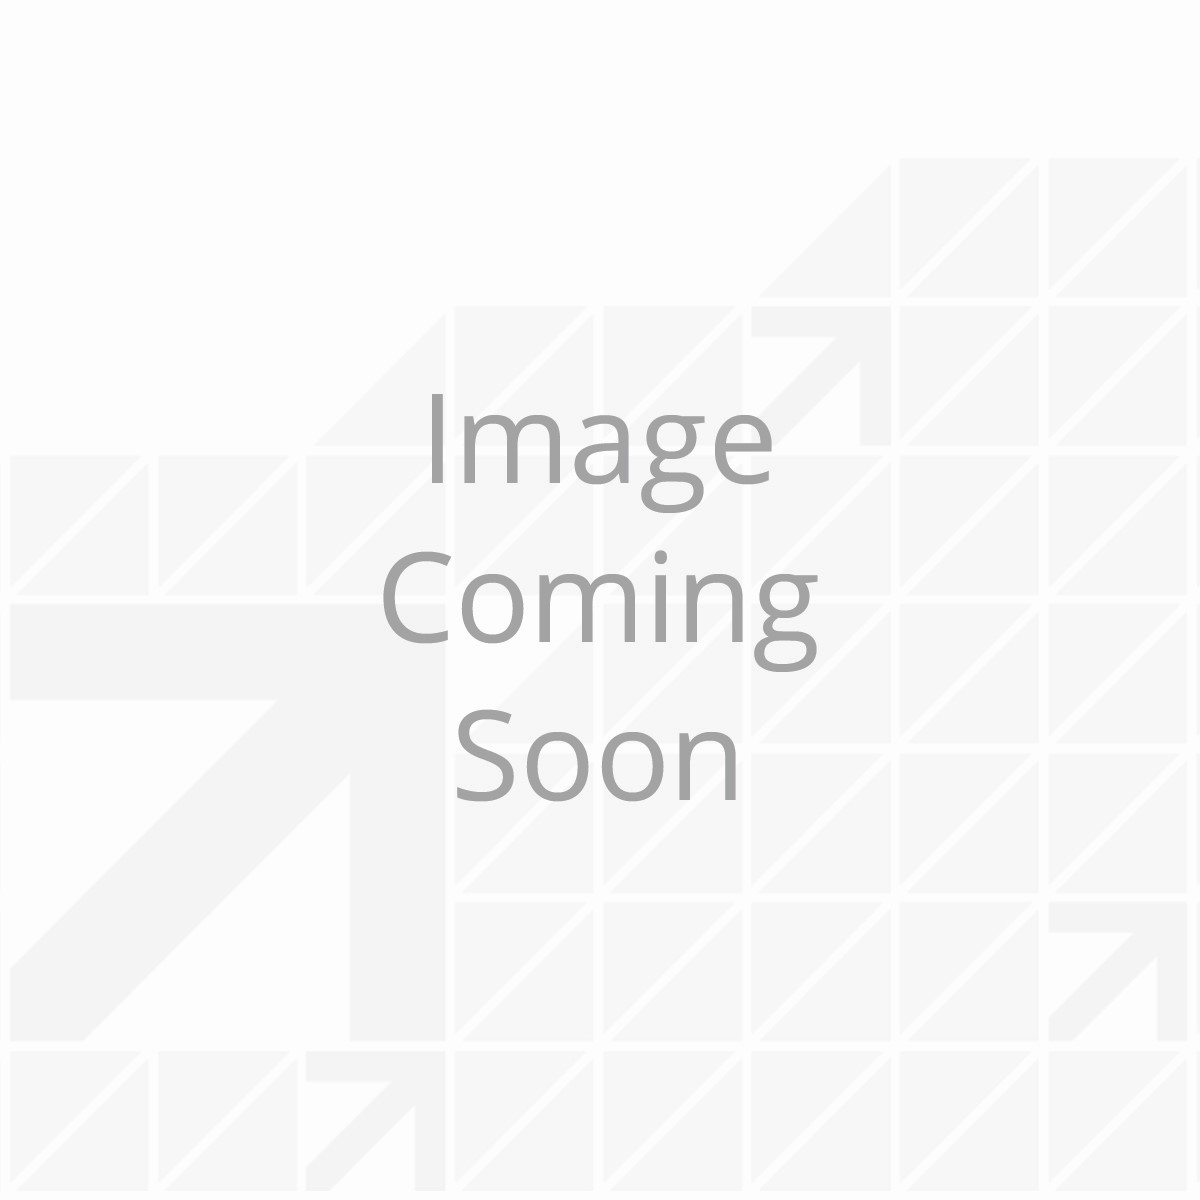 50A 125/250V Transfer Switch